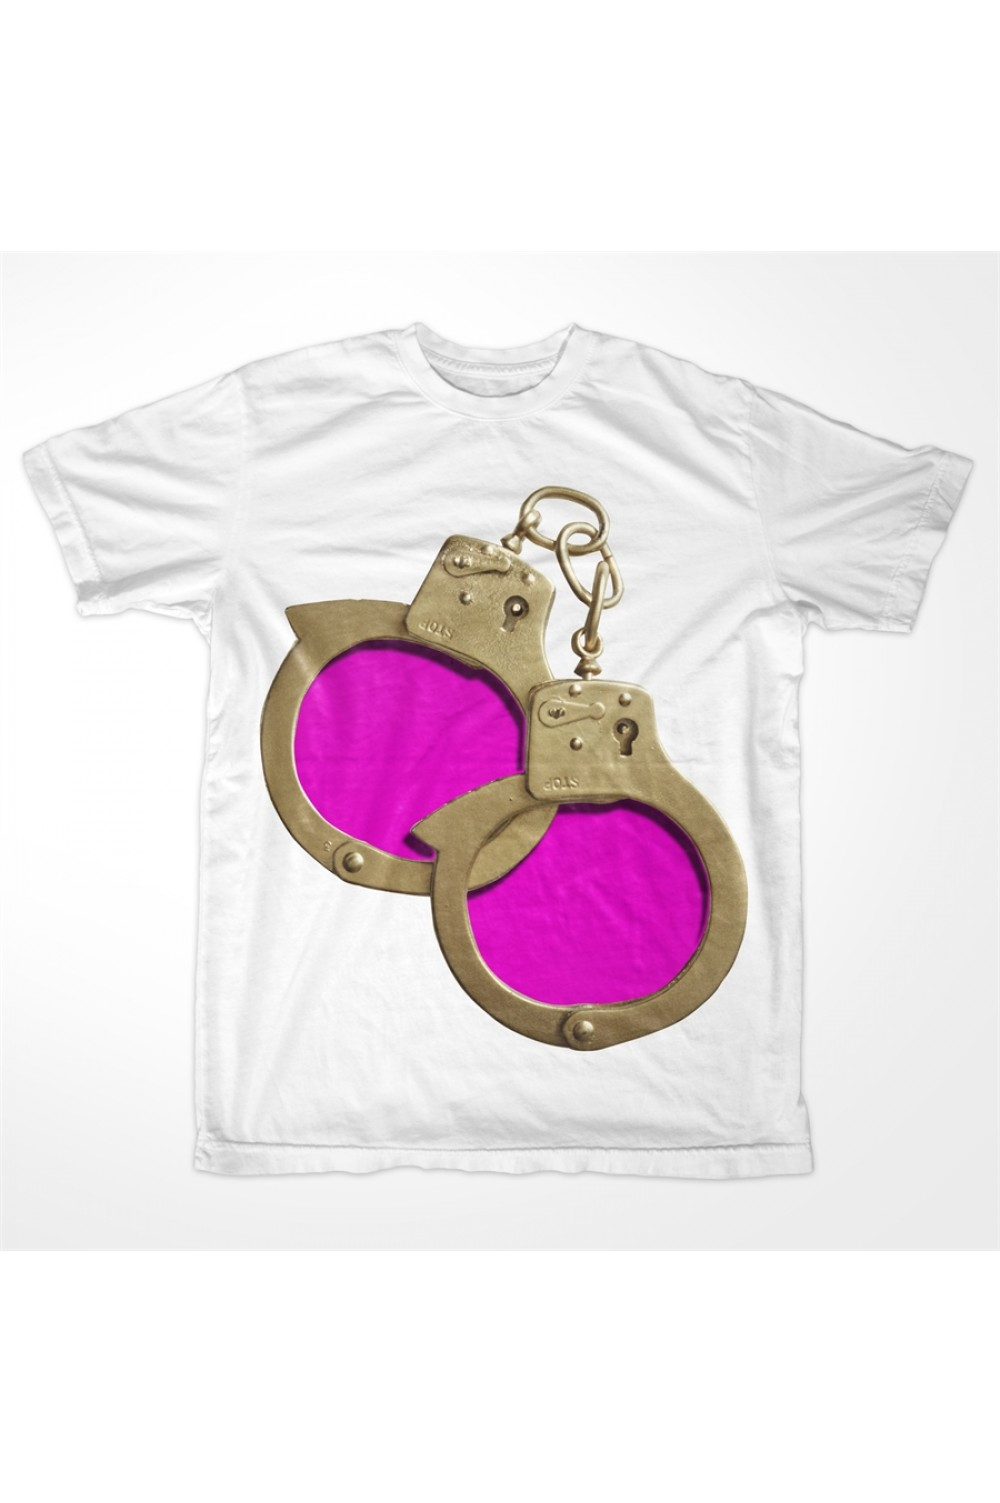 KABOX Men Printed T shirt Hand Cuffs